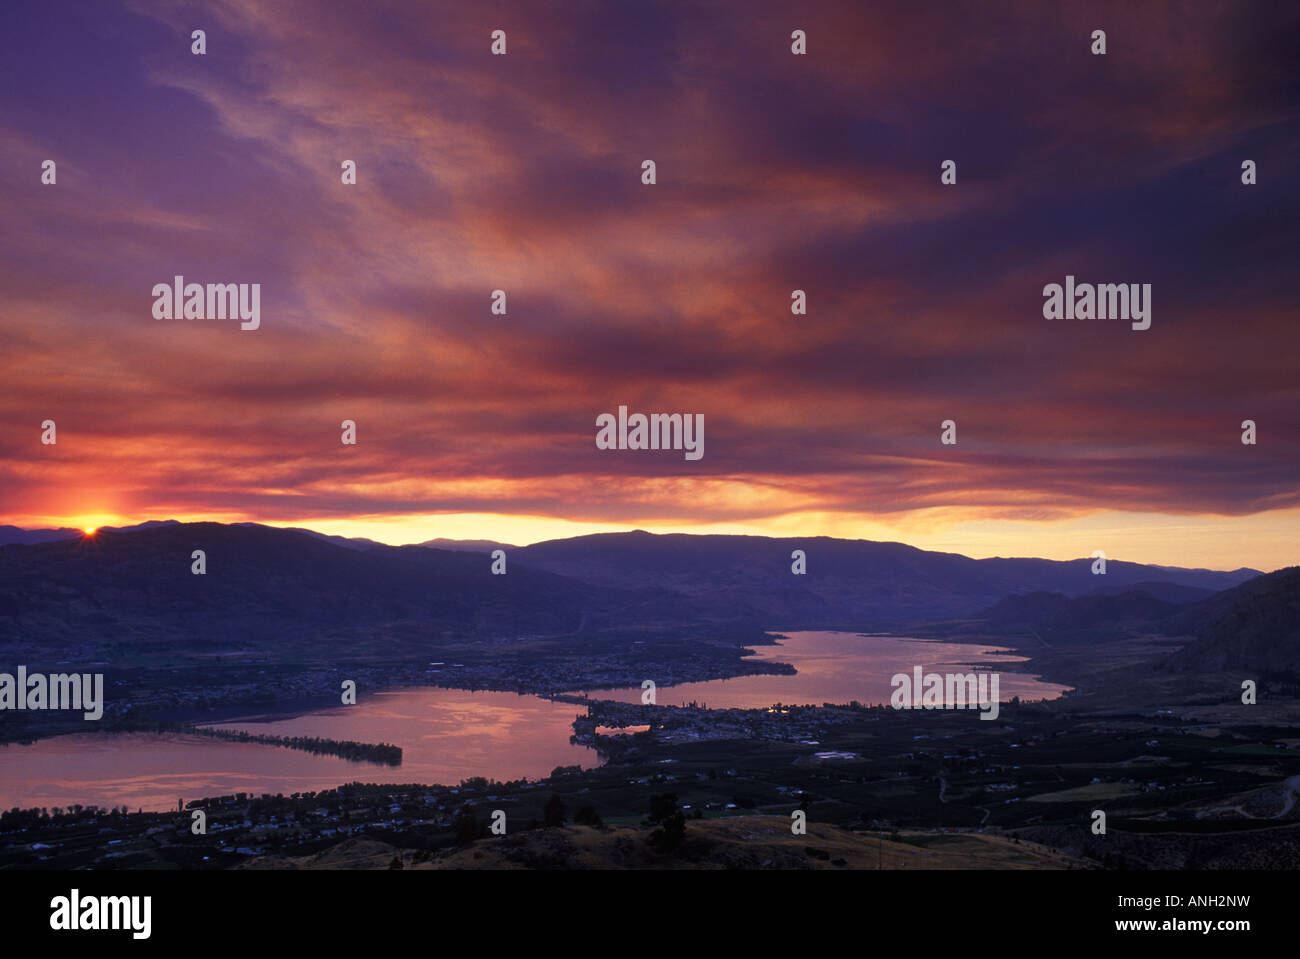 Sunset over Osoyoos Lake with forest fire smoke, British Columbia, Canada. - Stock Image